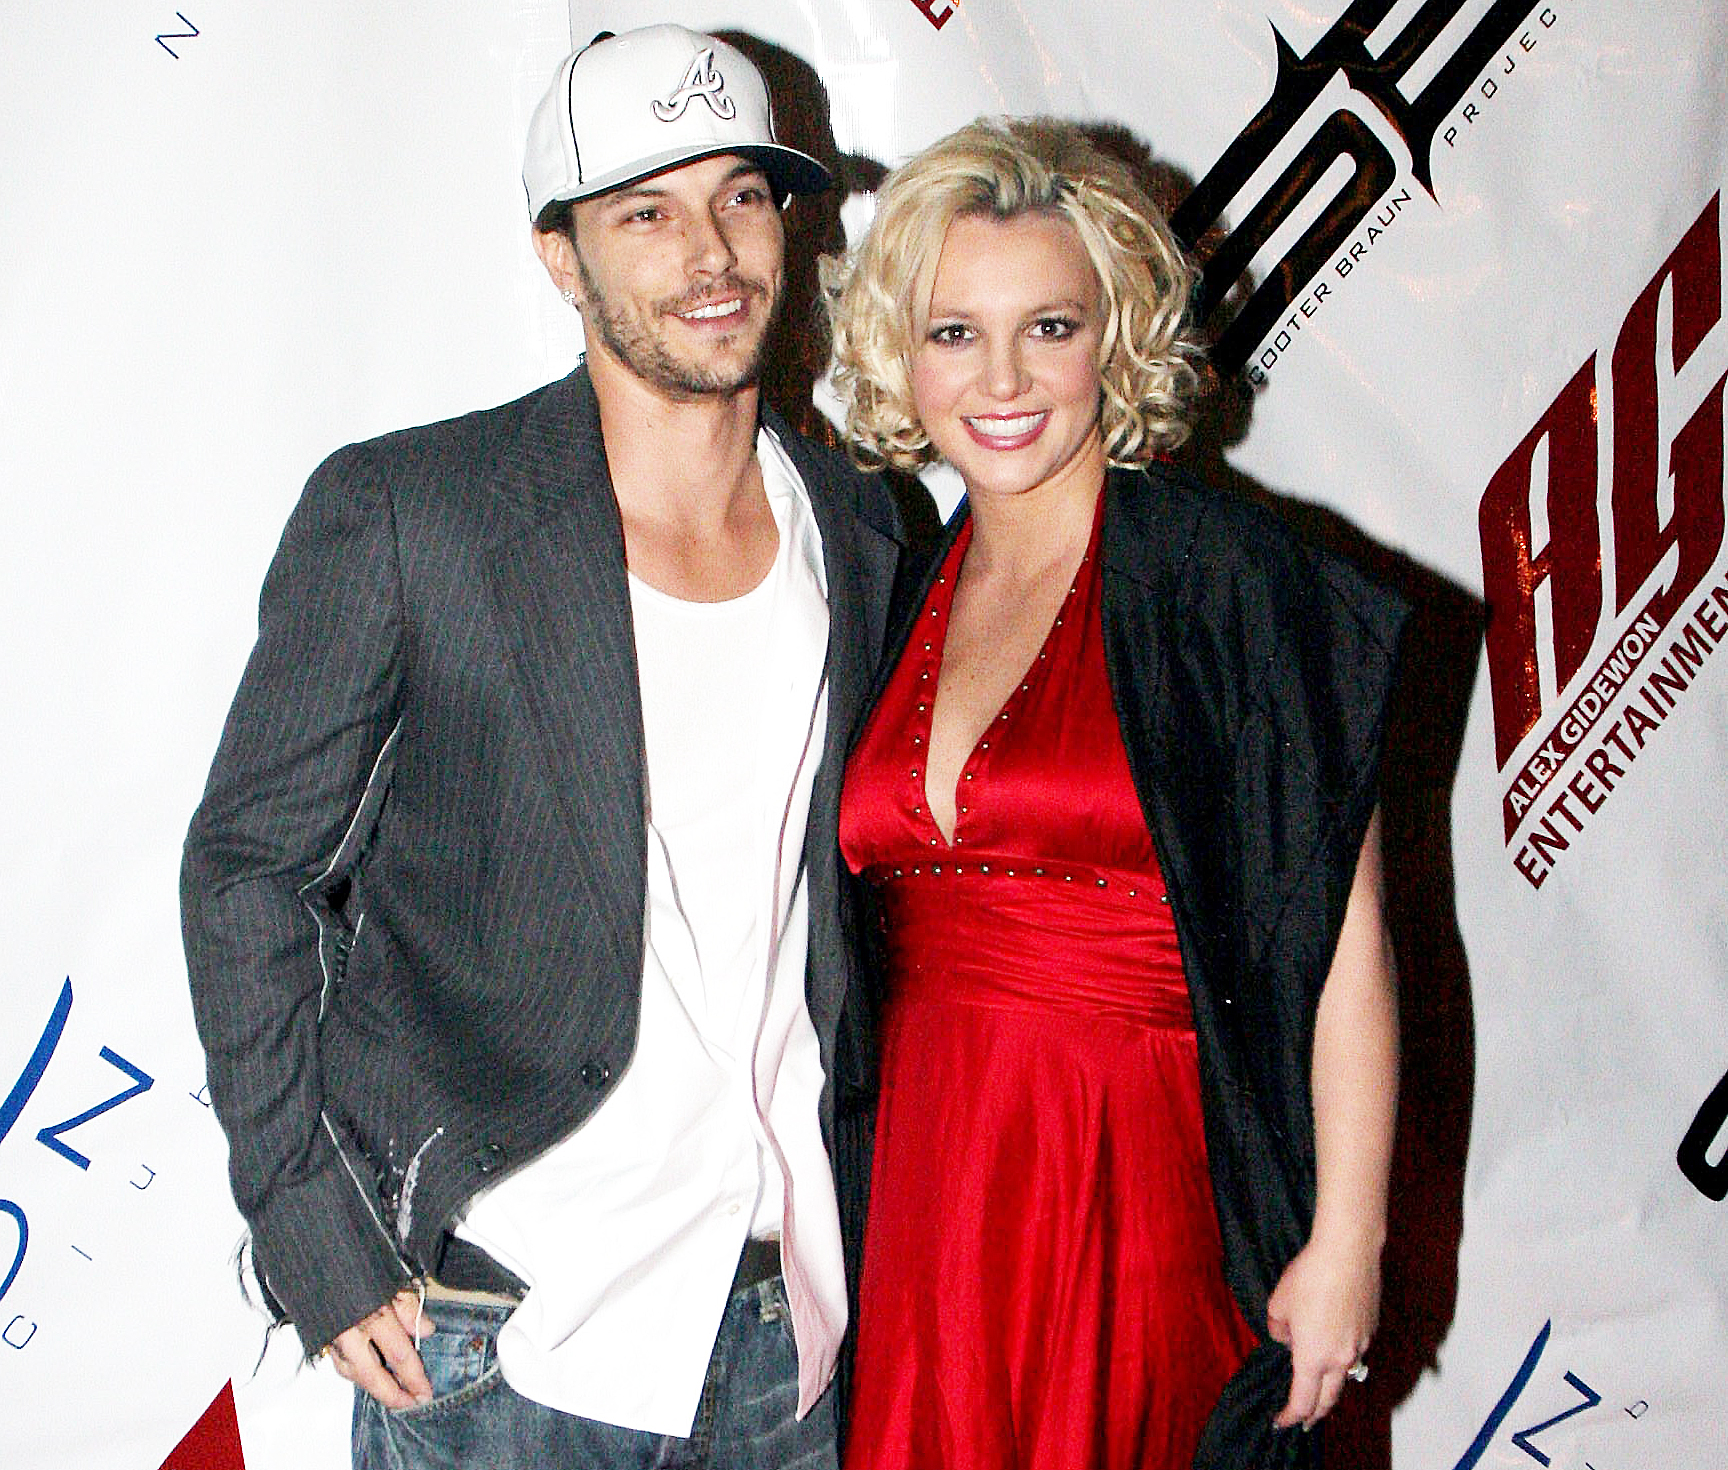 Why Kevin Federline Let Britney Spears Take Their Sons On Tour